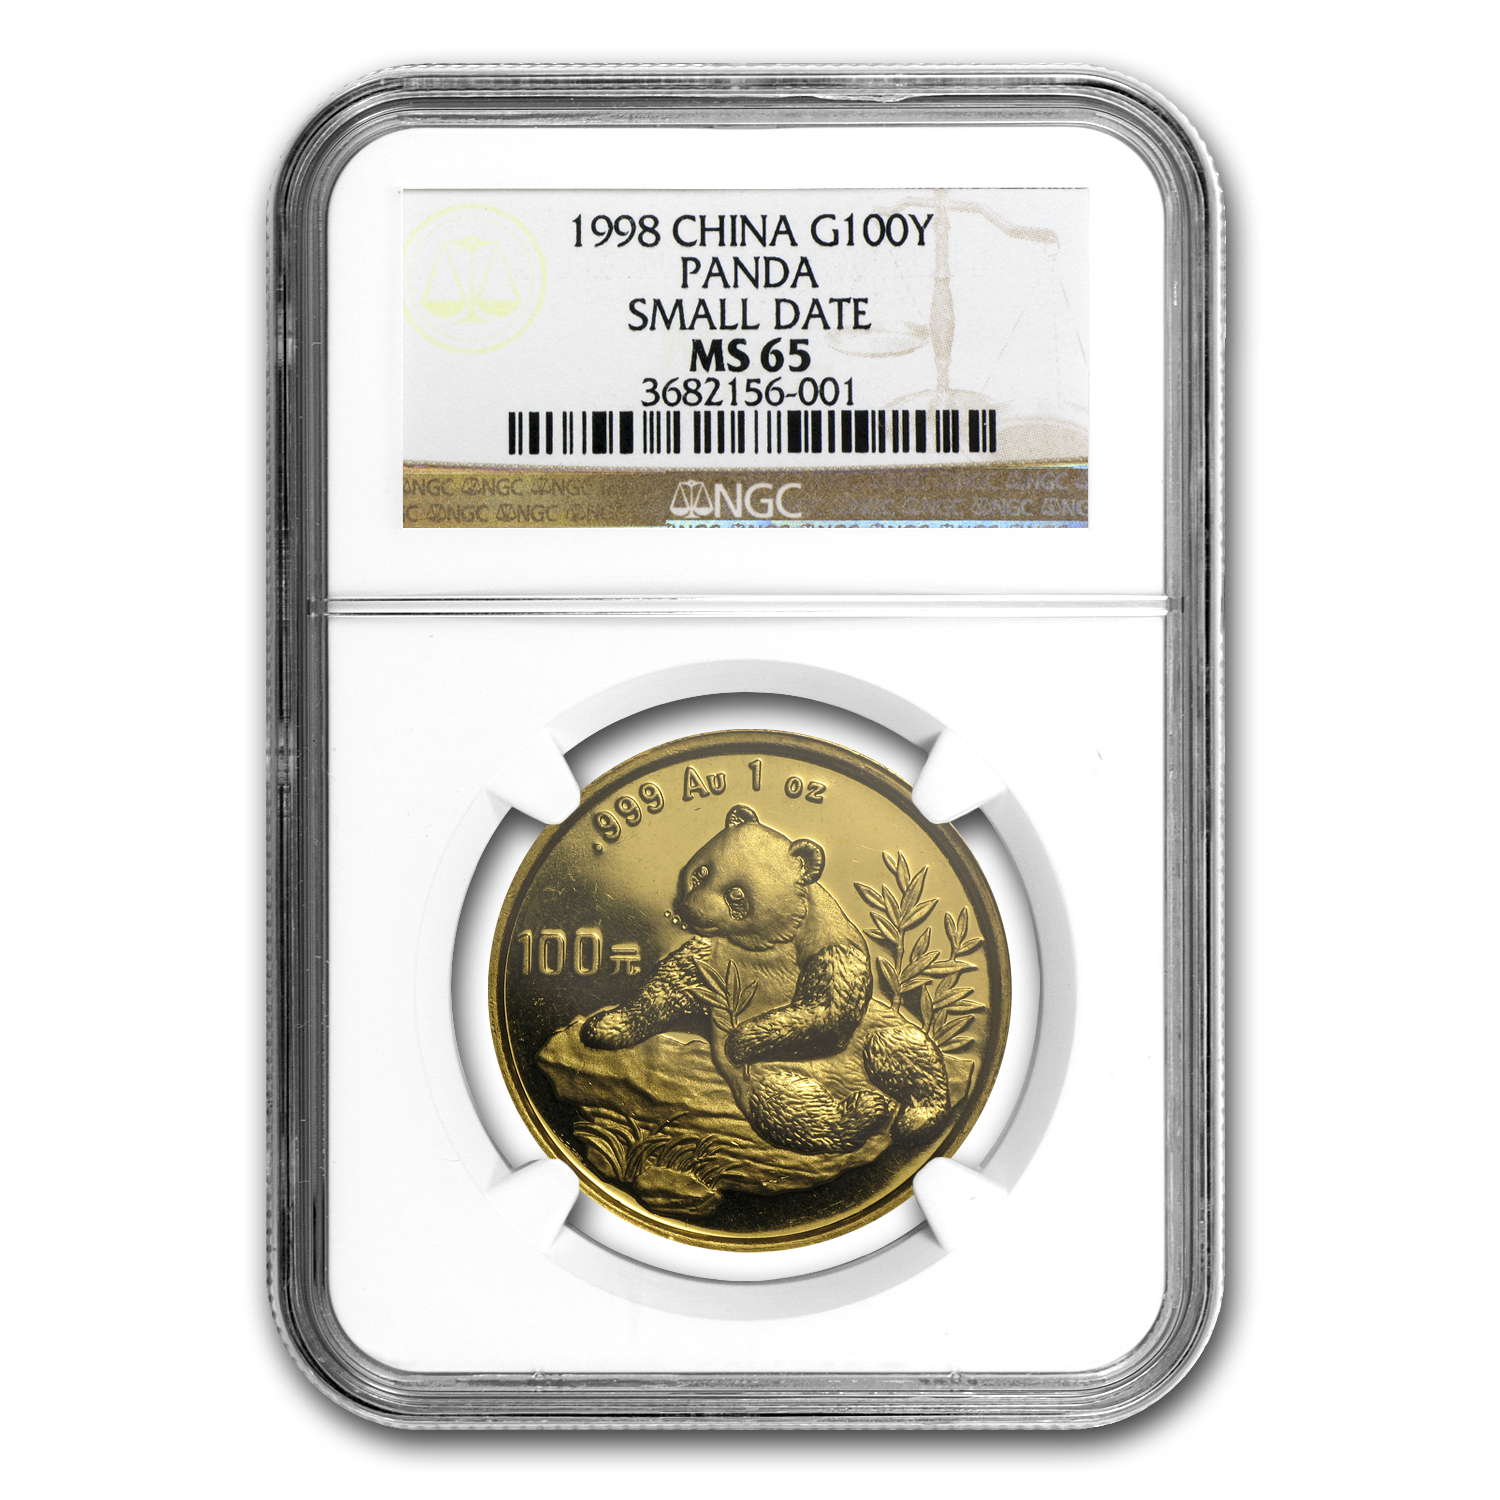 1998 1 oz Gold Chinese Panda MS-65 NGC - Small Date